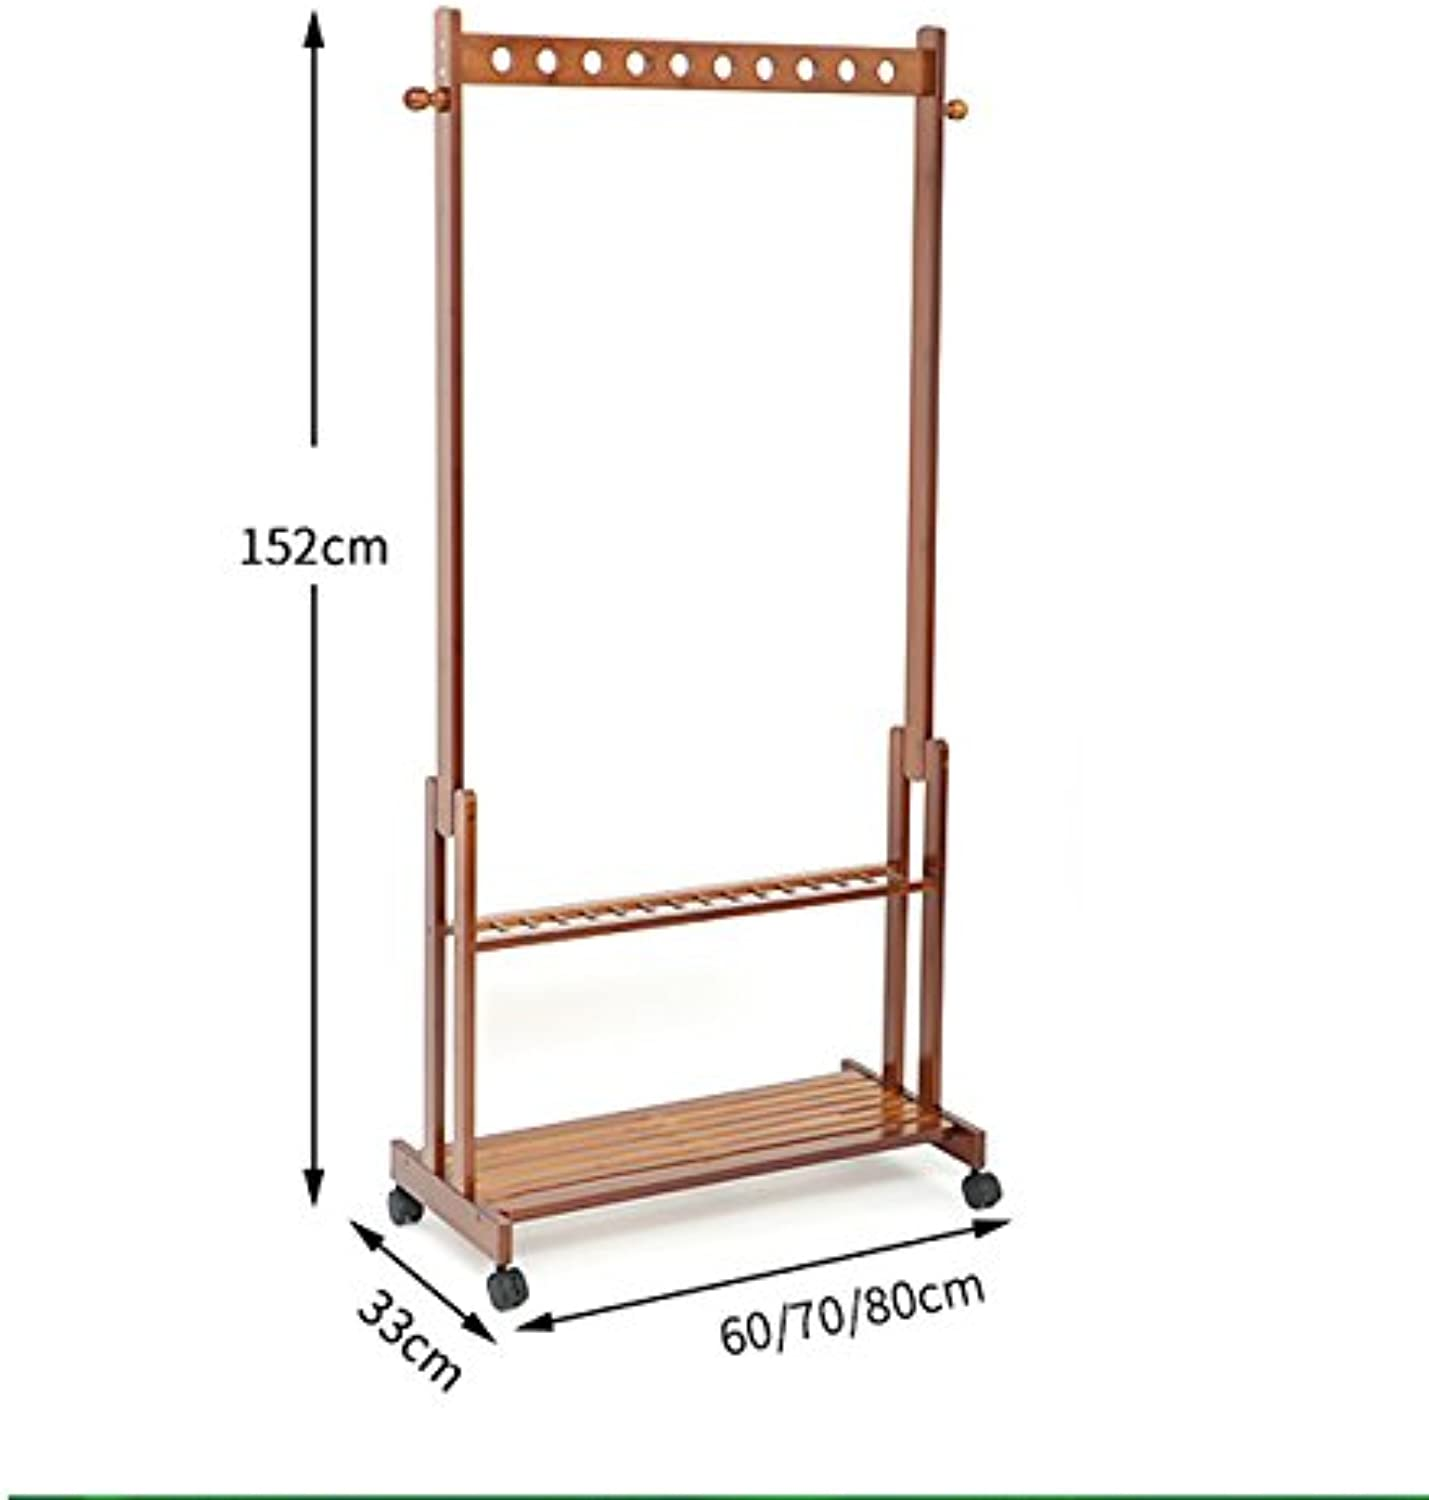 SUNSHINE Hangers Floor Bedroom Bamboo Clothes Storage Shelves With Pulleys Removable Coat Rack ( Size   6033152cm )